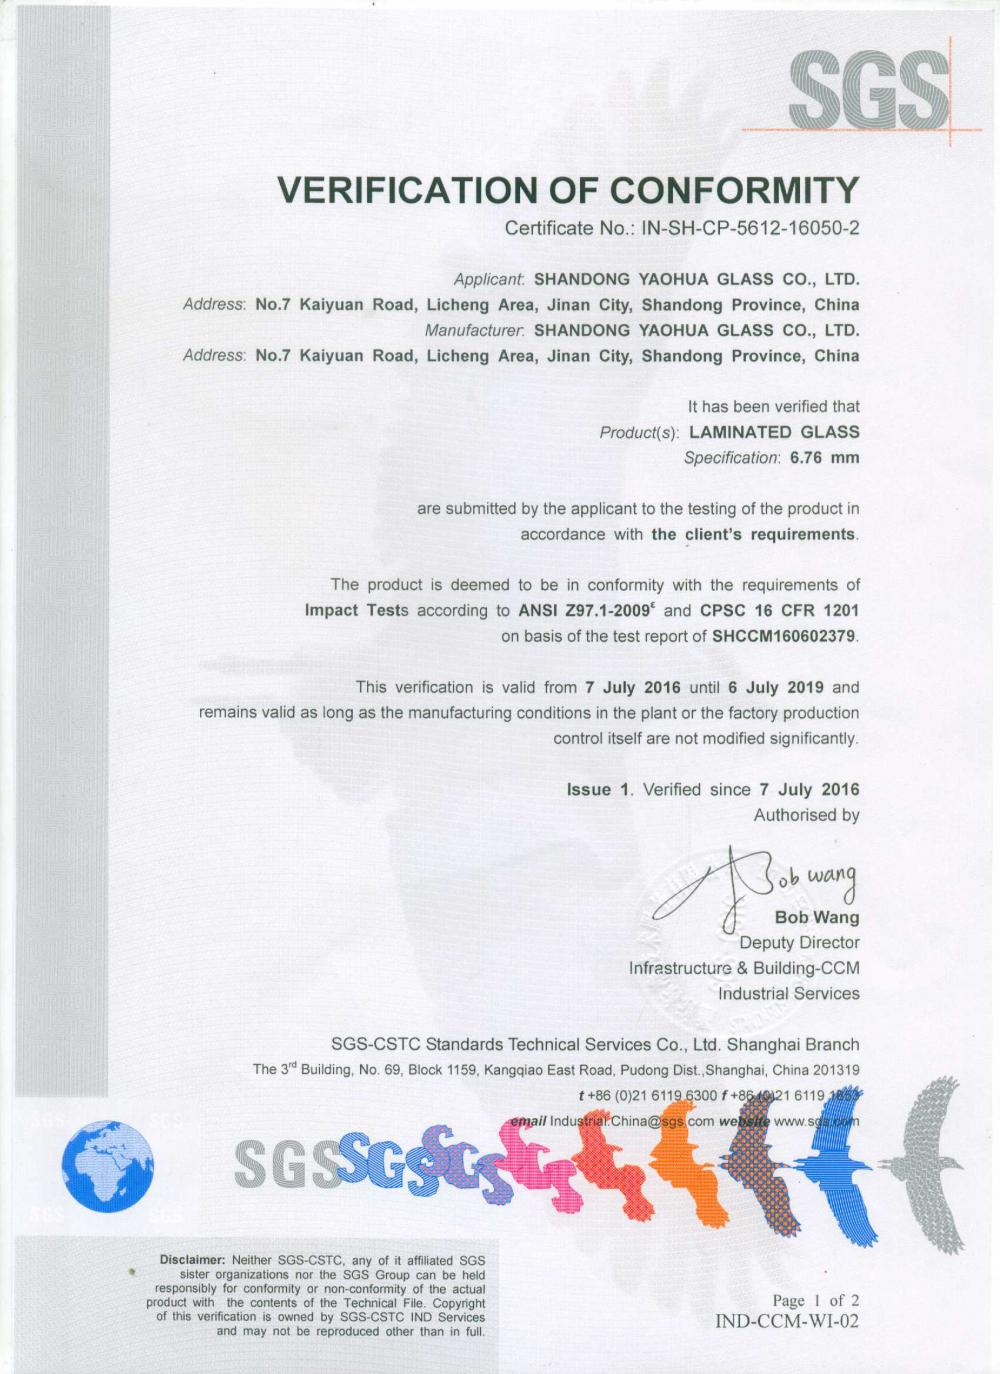 SGS verification of Conformity